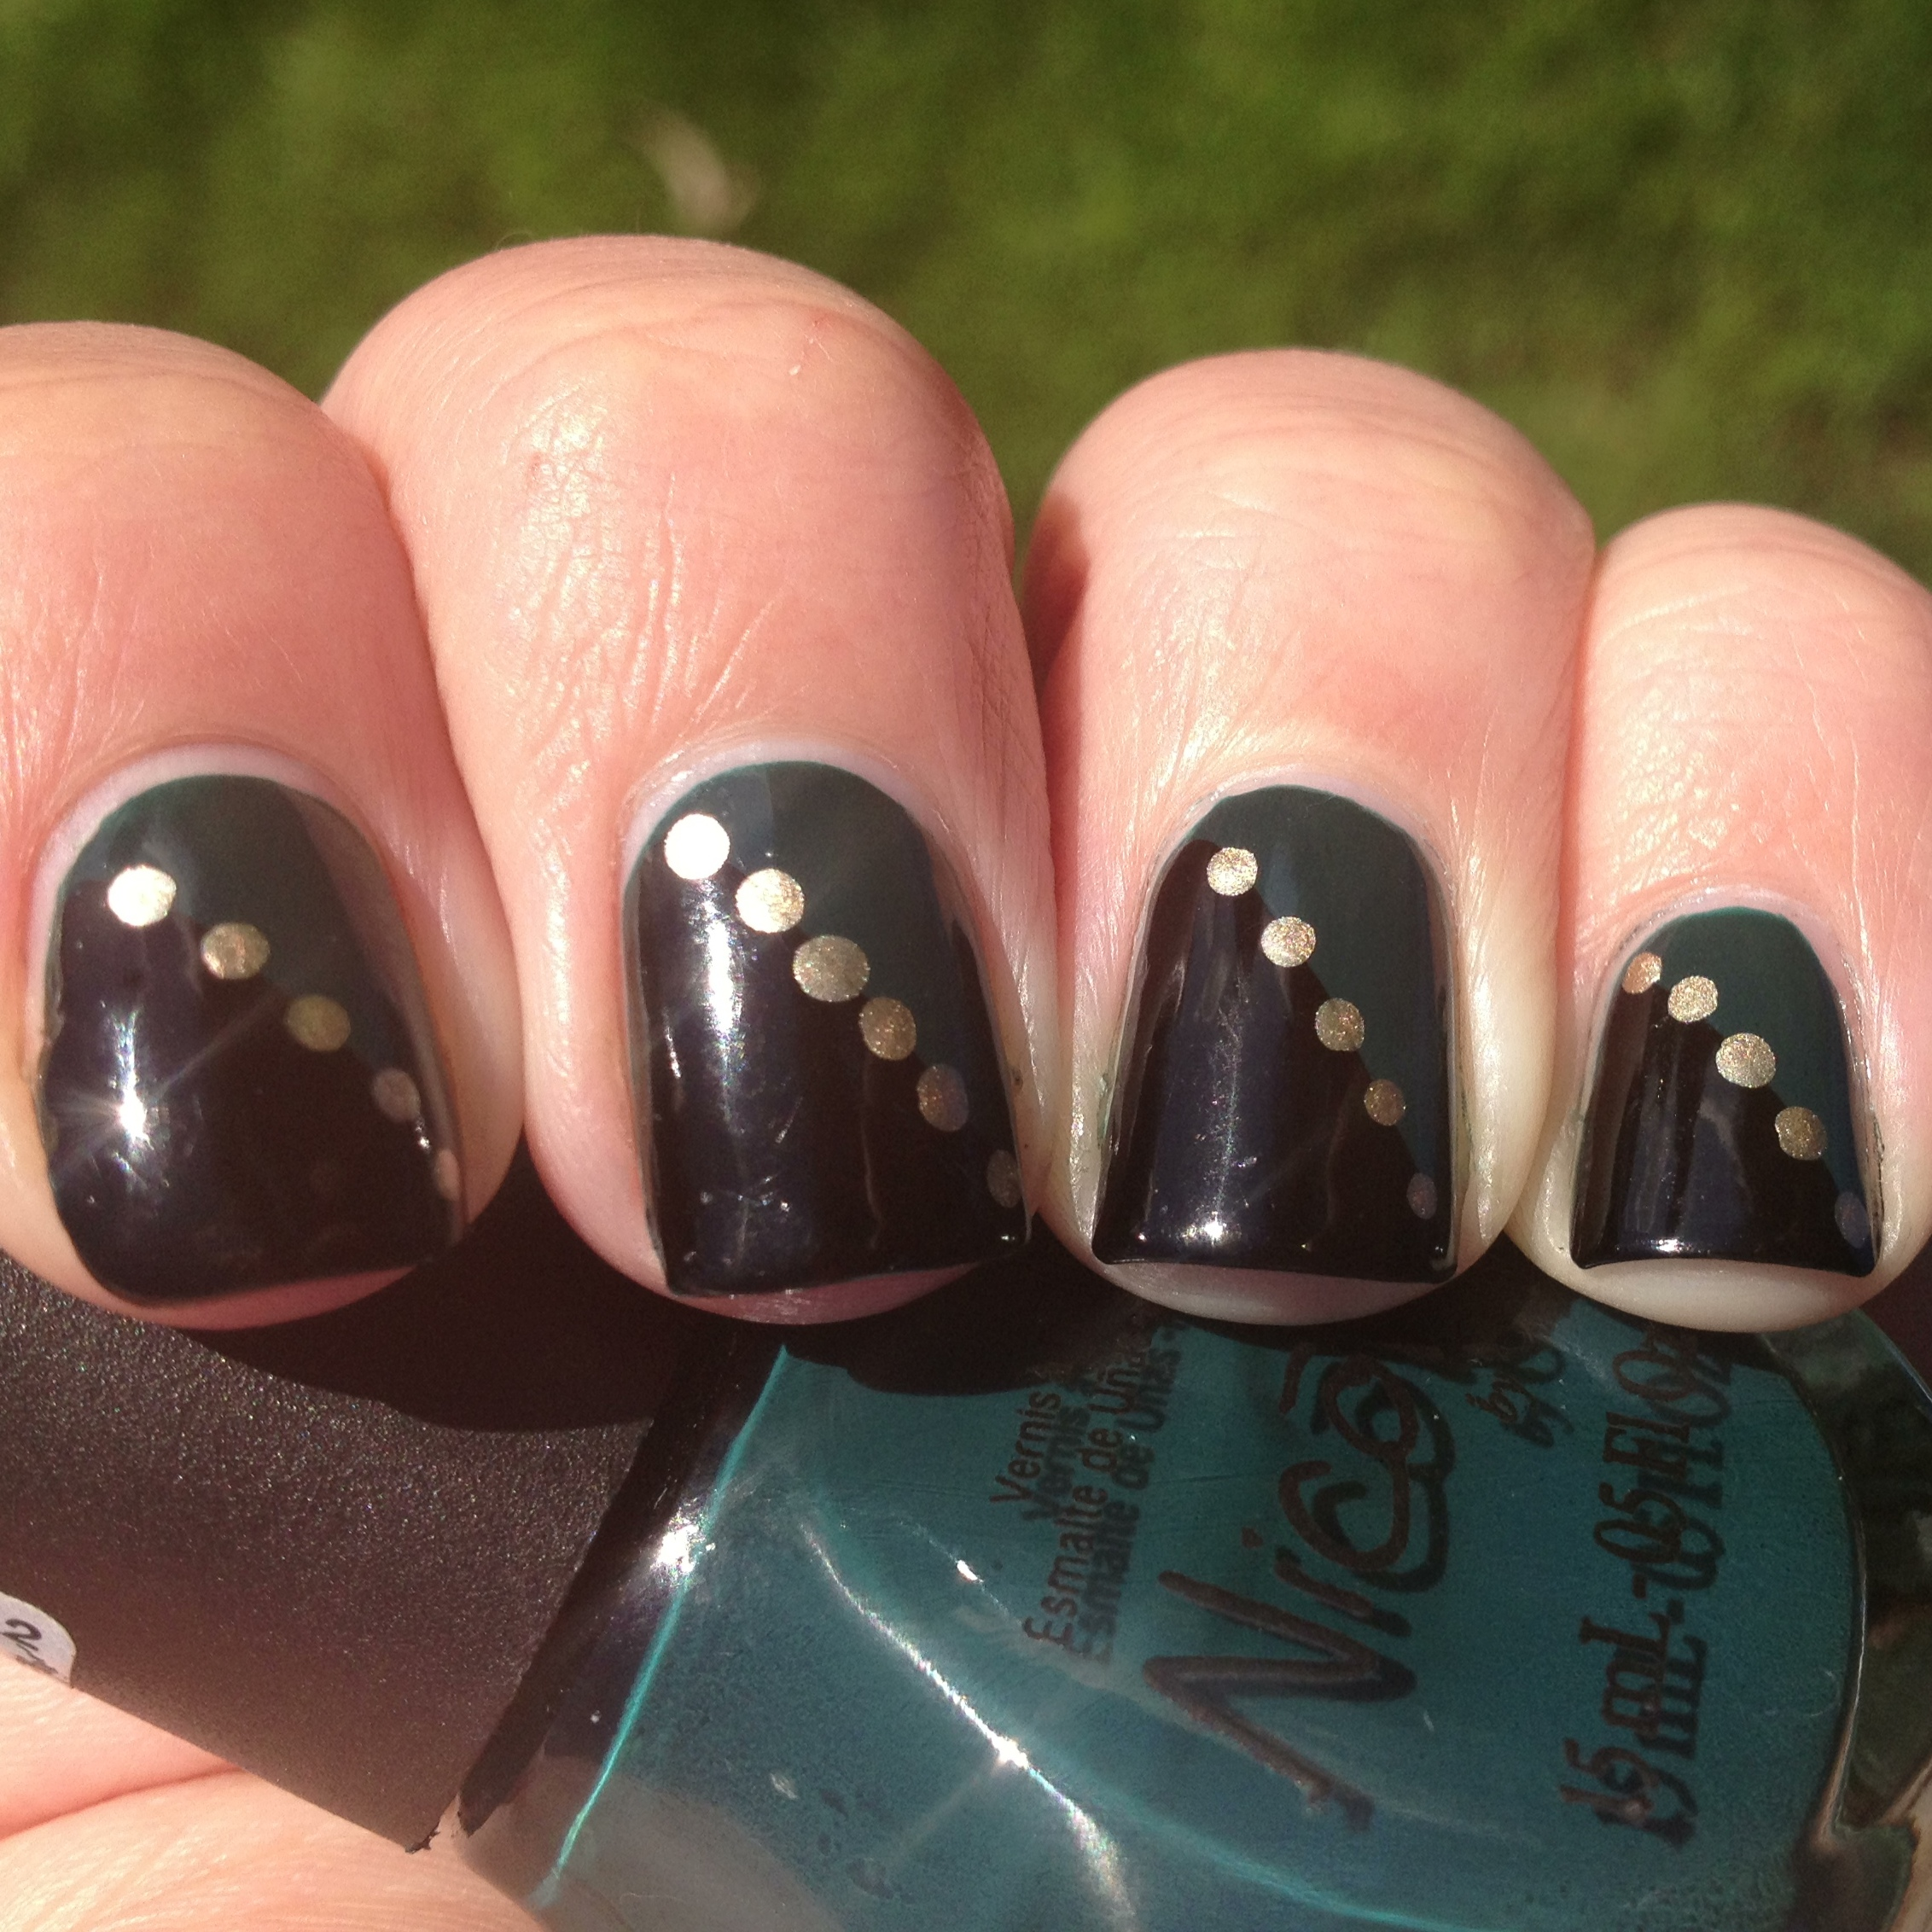 Chic Green, Black and Gold Nails | Polish Me, Please!